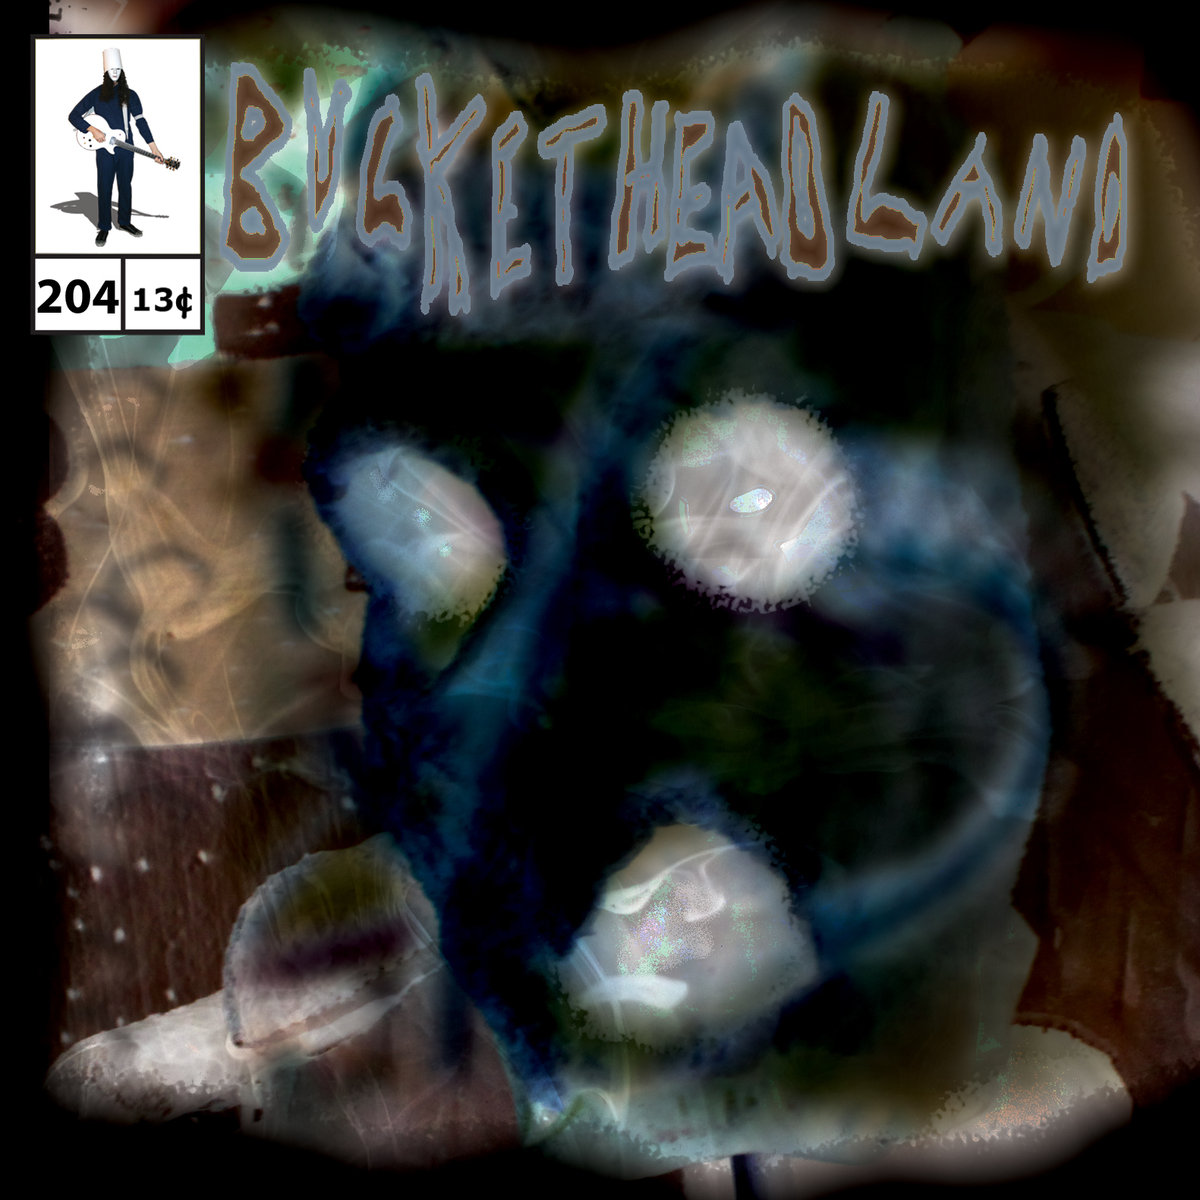 Buckethead - Pike 204: 3 Days Til Halloween: Crow Hedge (2015)